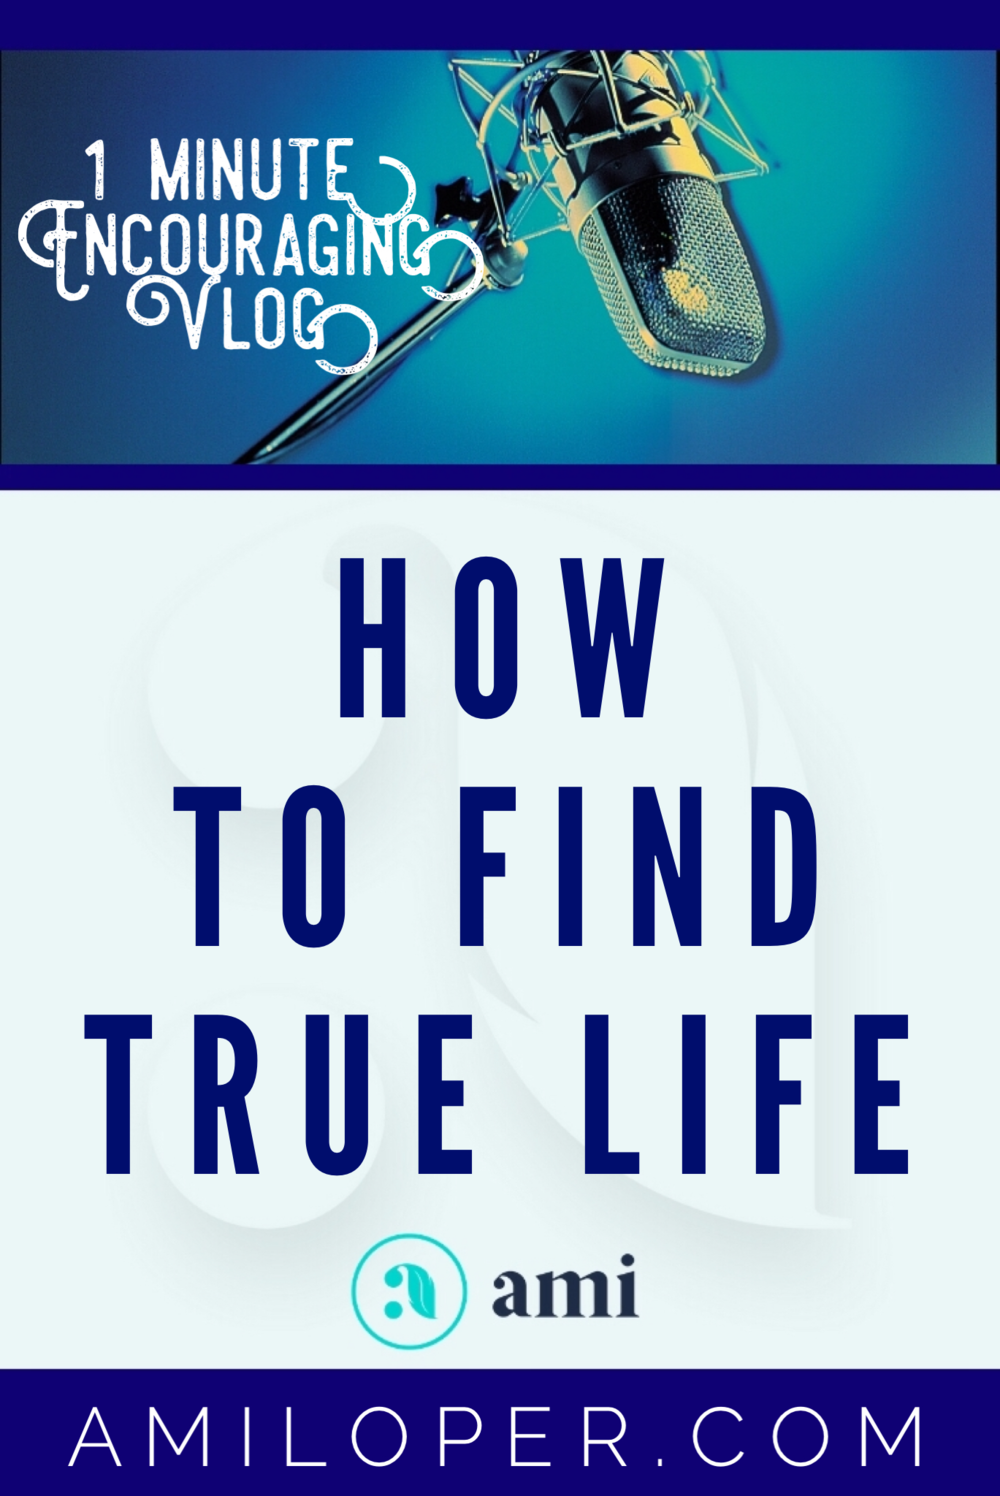 Do you find yourself on a constant search, always trying to fill a void? Perhaps you've repeatedly had that void filled only to find it empty again. What will fill you up and give you overflowing life? #TrueLife #Vlog